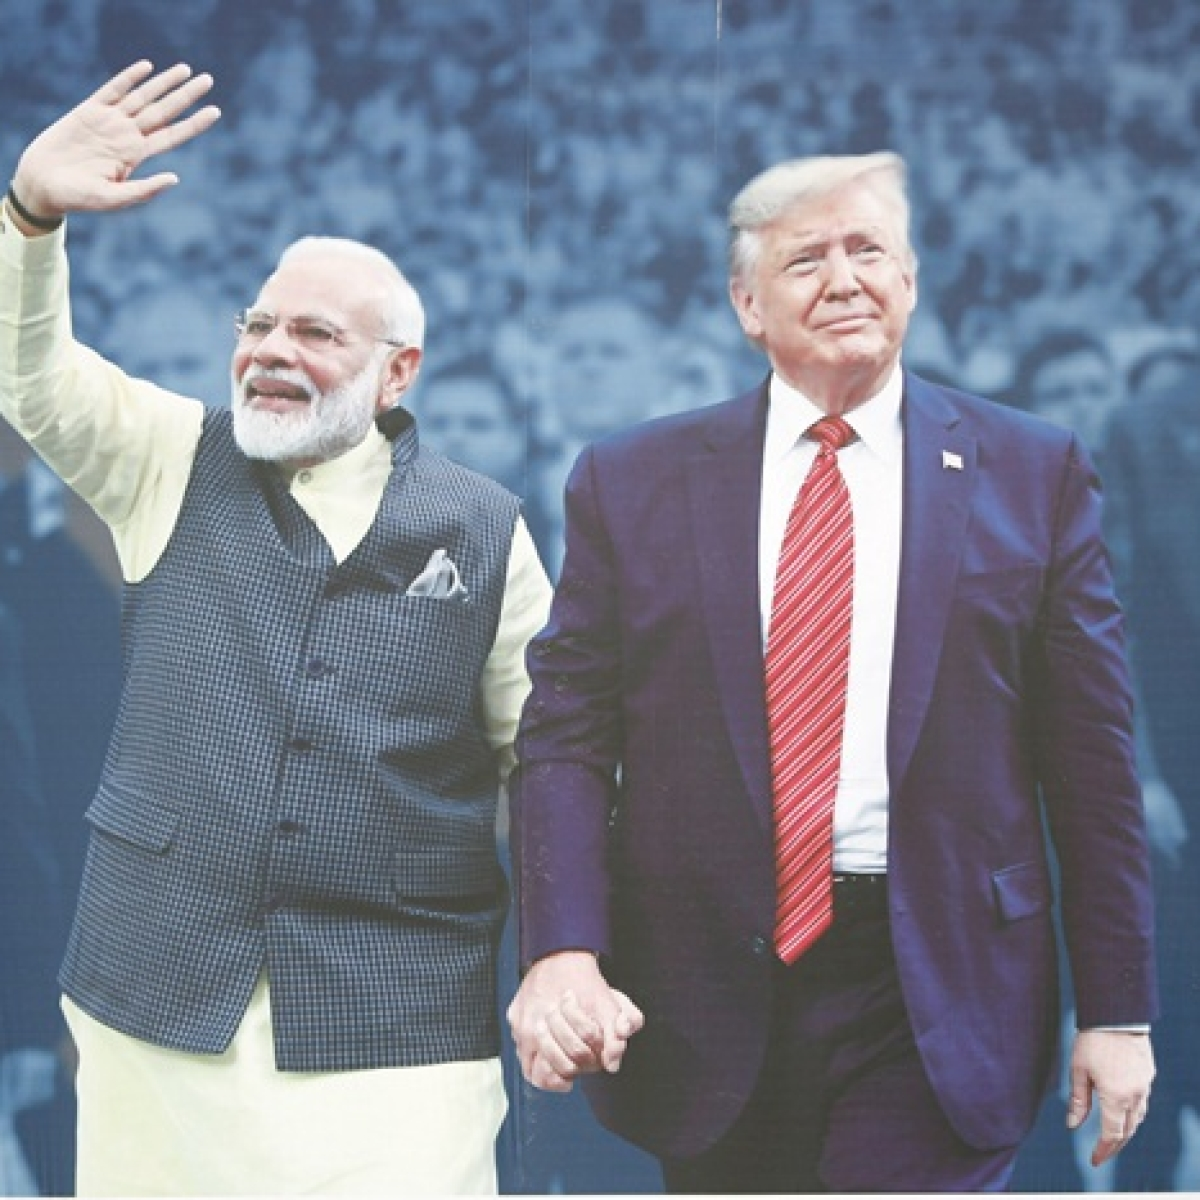 From cleaning Shahjahan's grave to building a wall: How India is welcoming Donald Trump